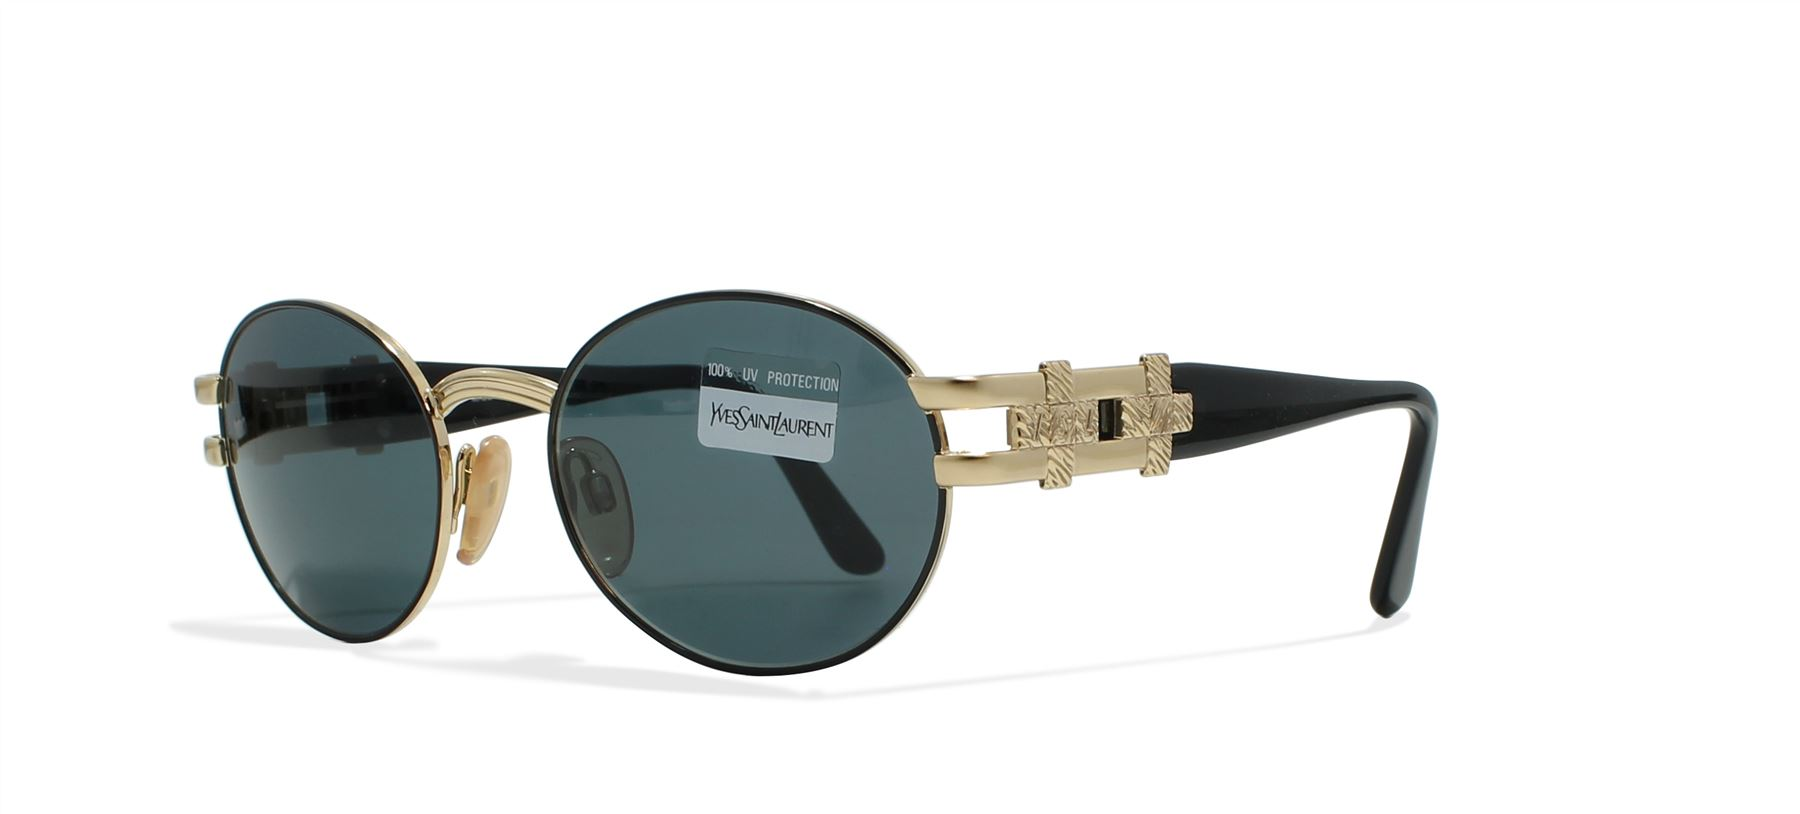 9bb86980229 ... as eyewear experts since opening up our collection to the public in  1998. The most exclusive designs from the worlds most iconic fashion houses.